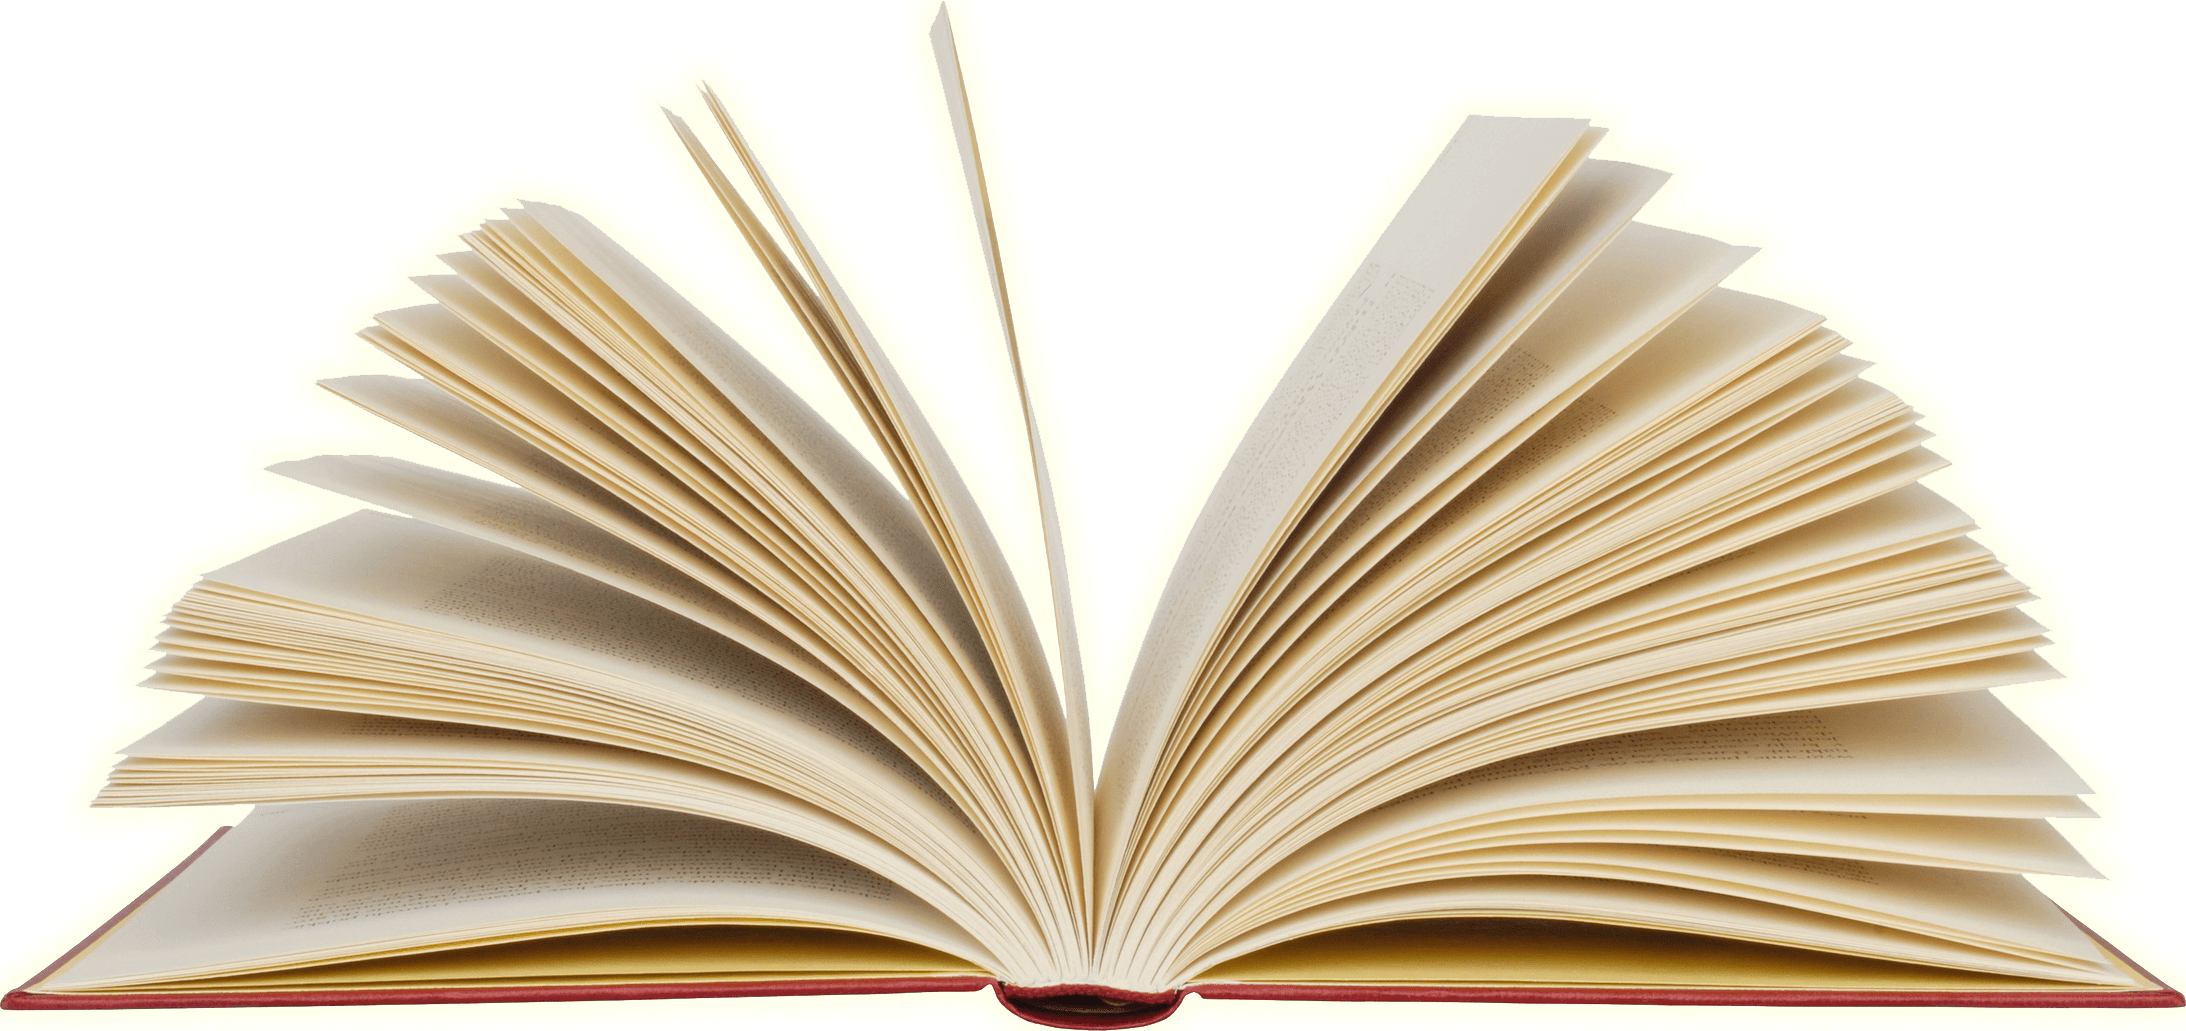 Open book clipart png svg stock 7 Open Book Png Image svg stock